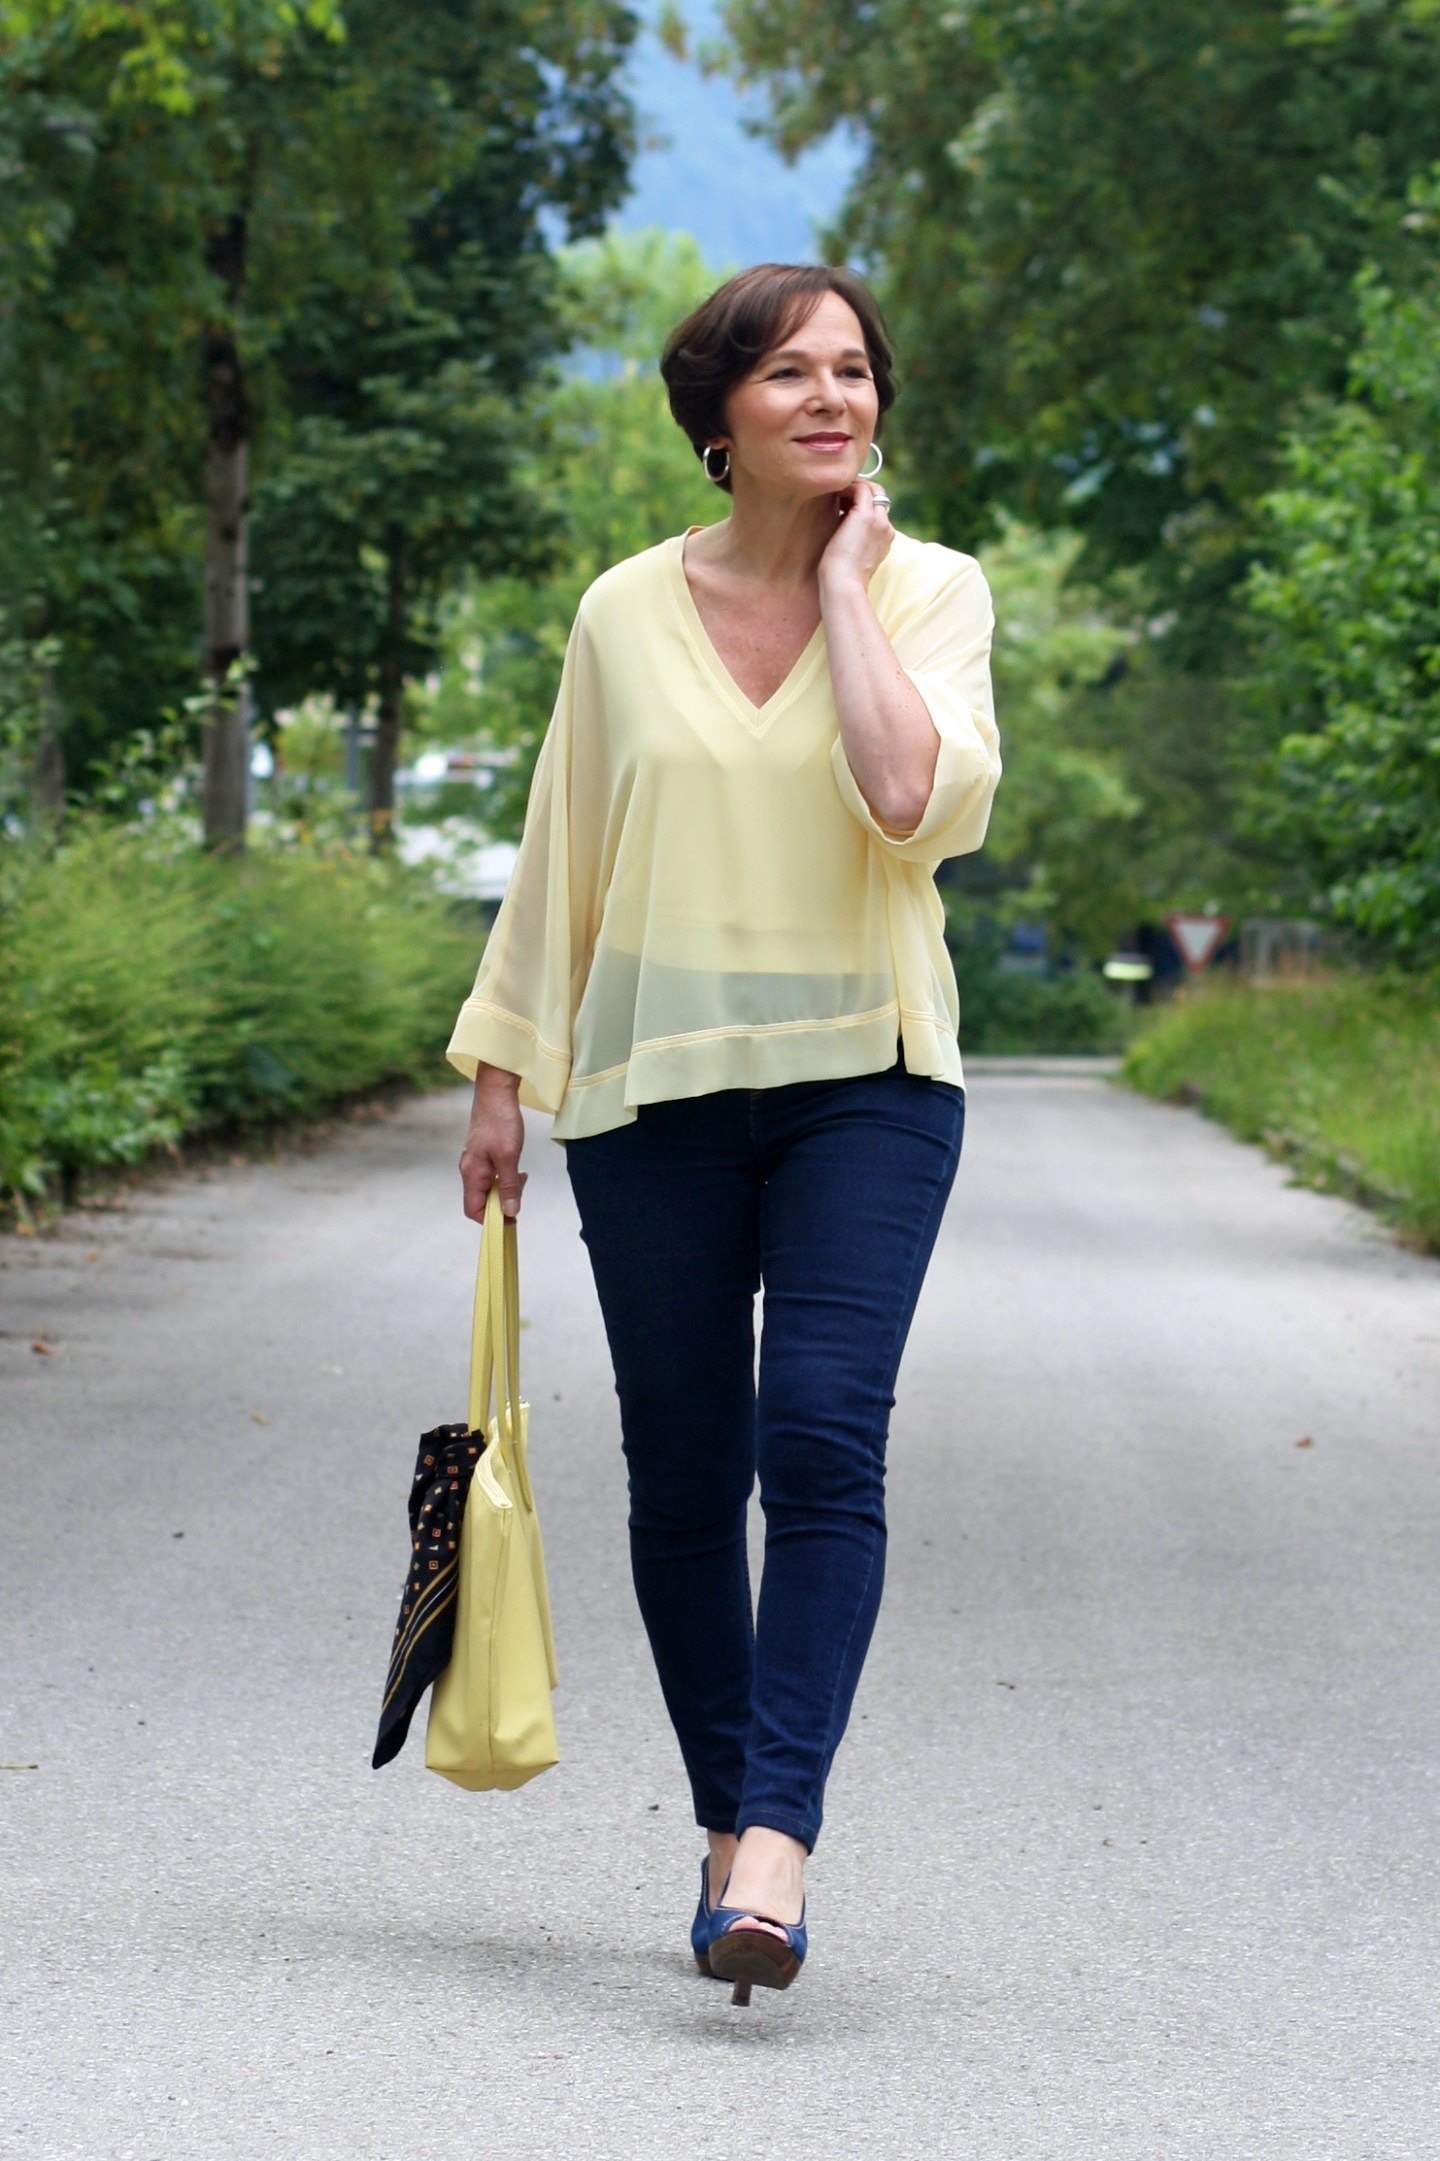 LadyofStyle Gelb Trendfarbe 50plus Blogger